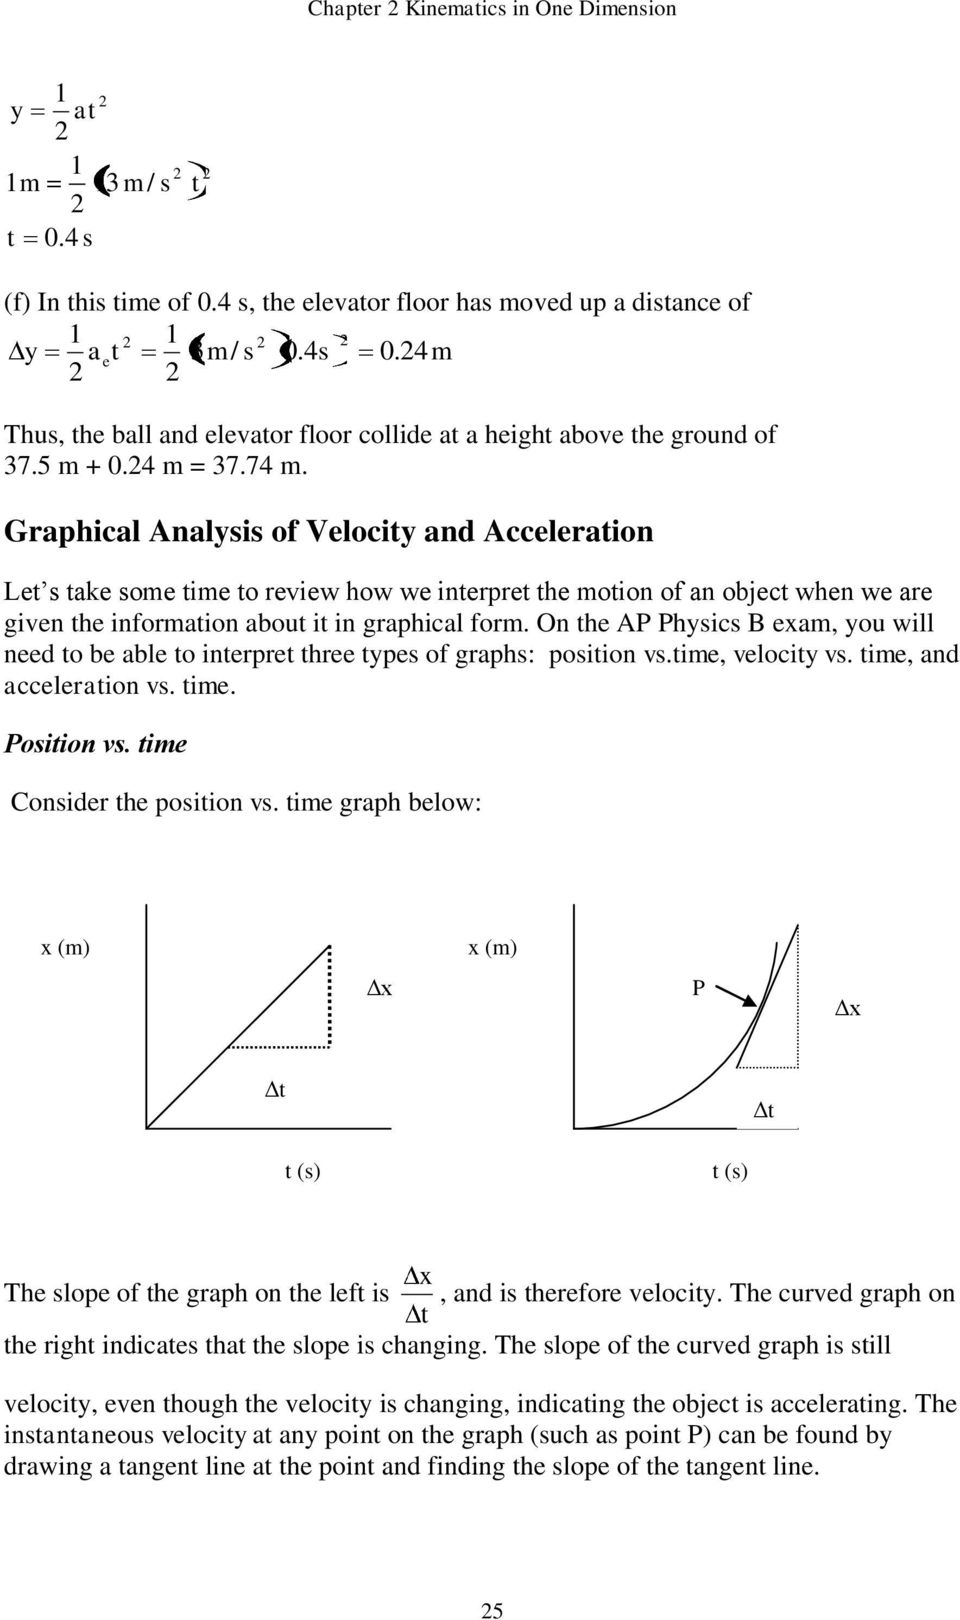 Graphical Analysis of Velociy and Acceleraion Le s ake some ime o reiew how we inerpre he moion of an objec when we are gien he informaion abou i in graphical form.